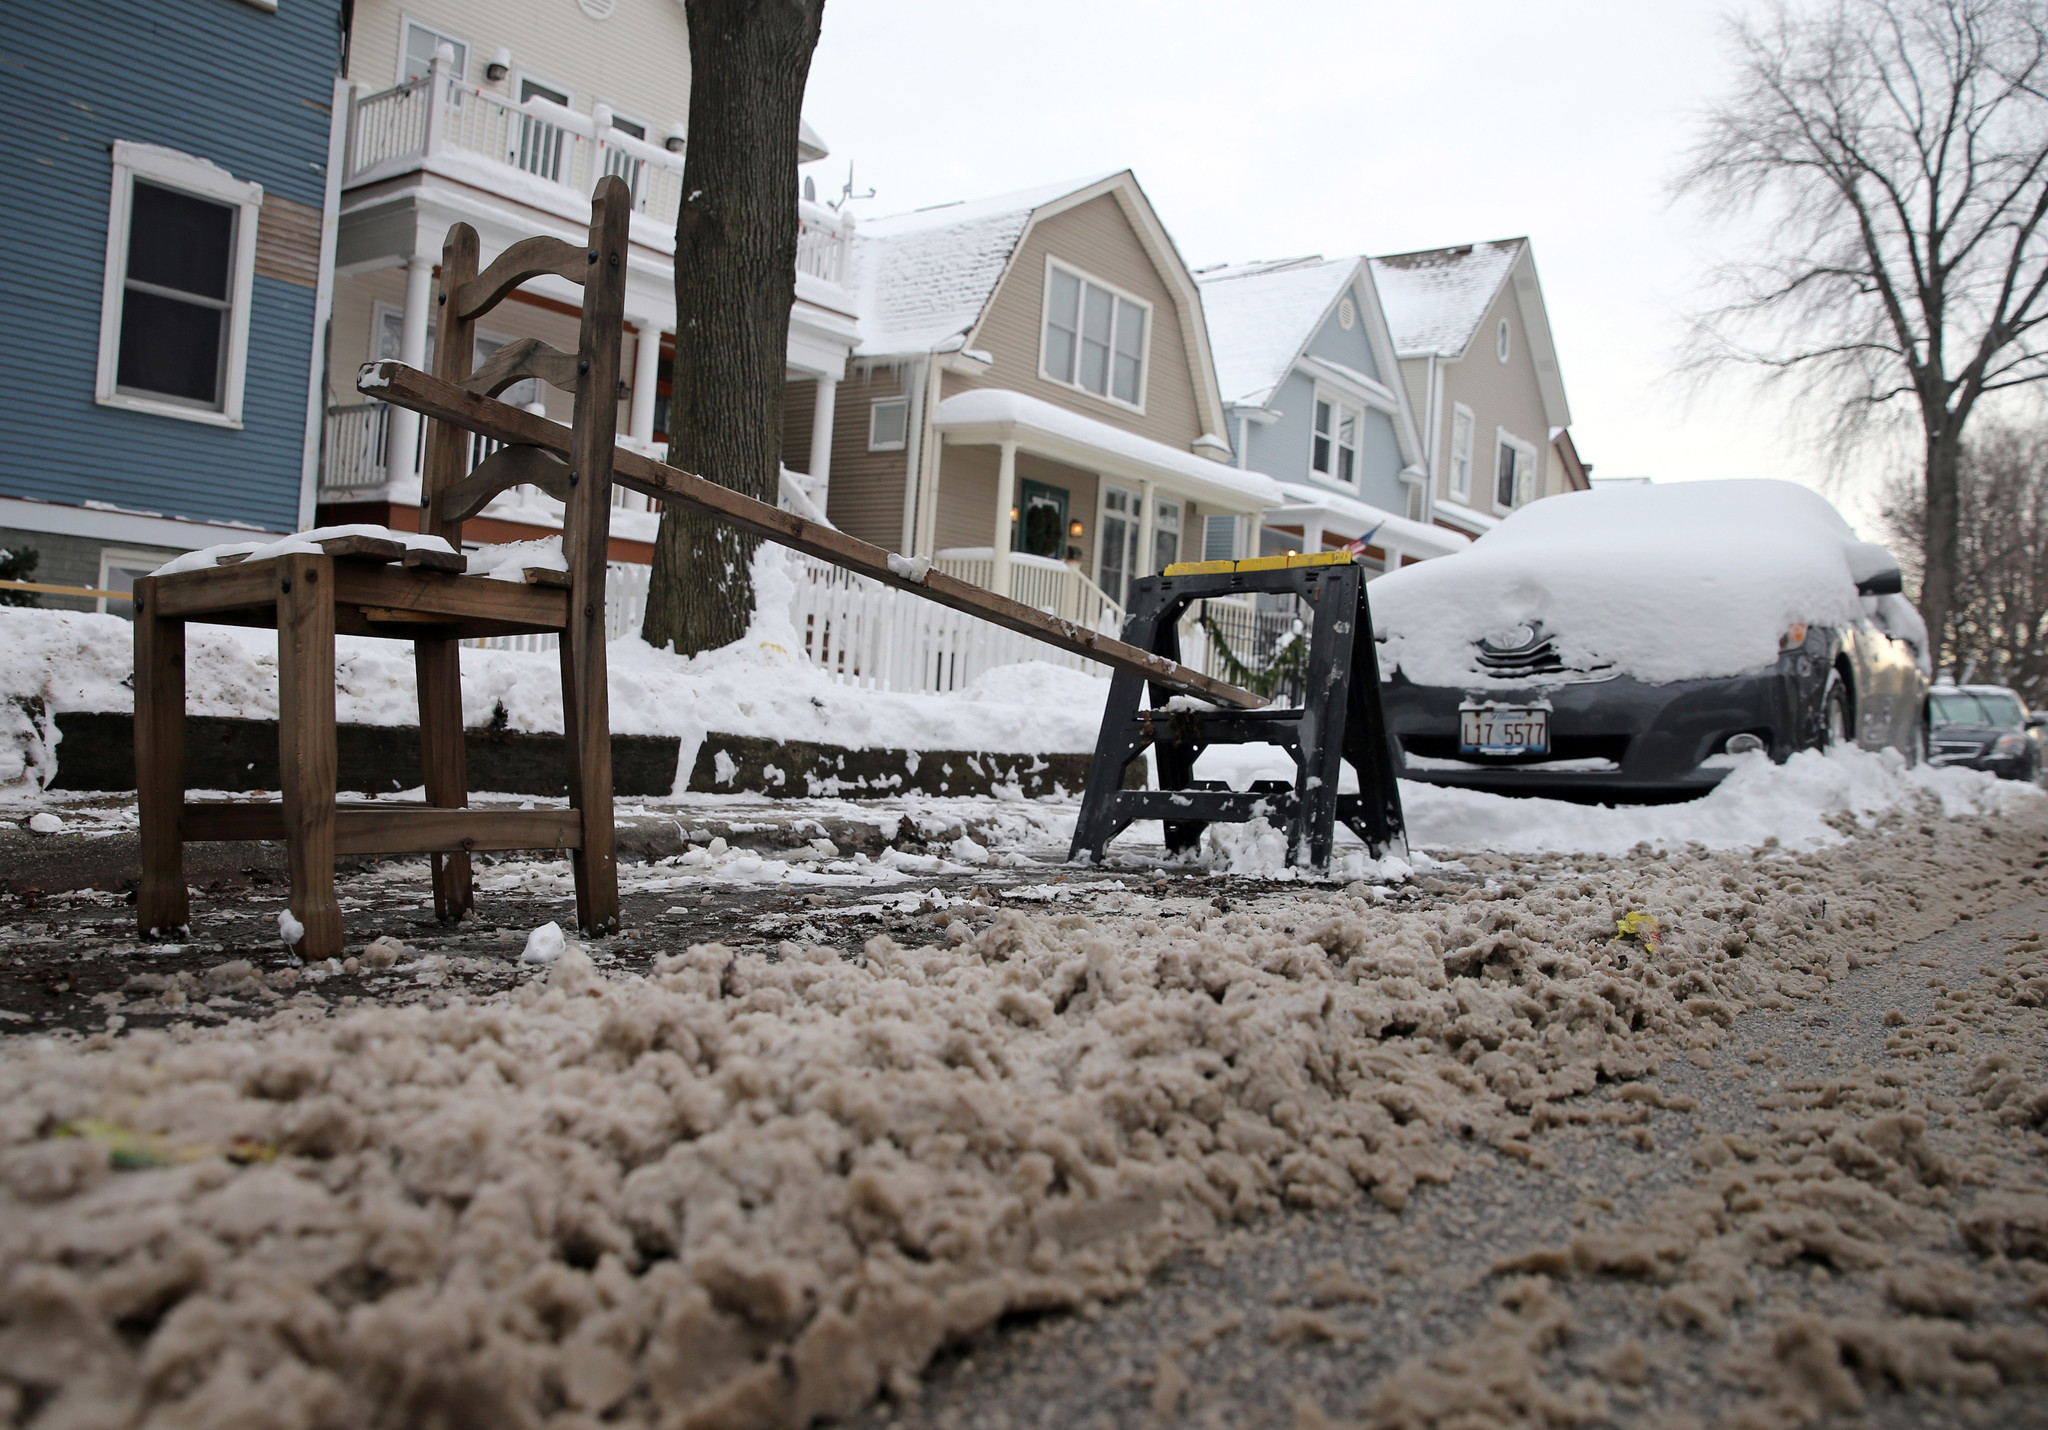 Big winter storm descends on Chicago area, bringing heavy snowfall and strong winds